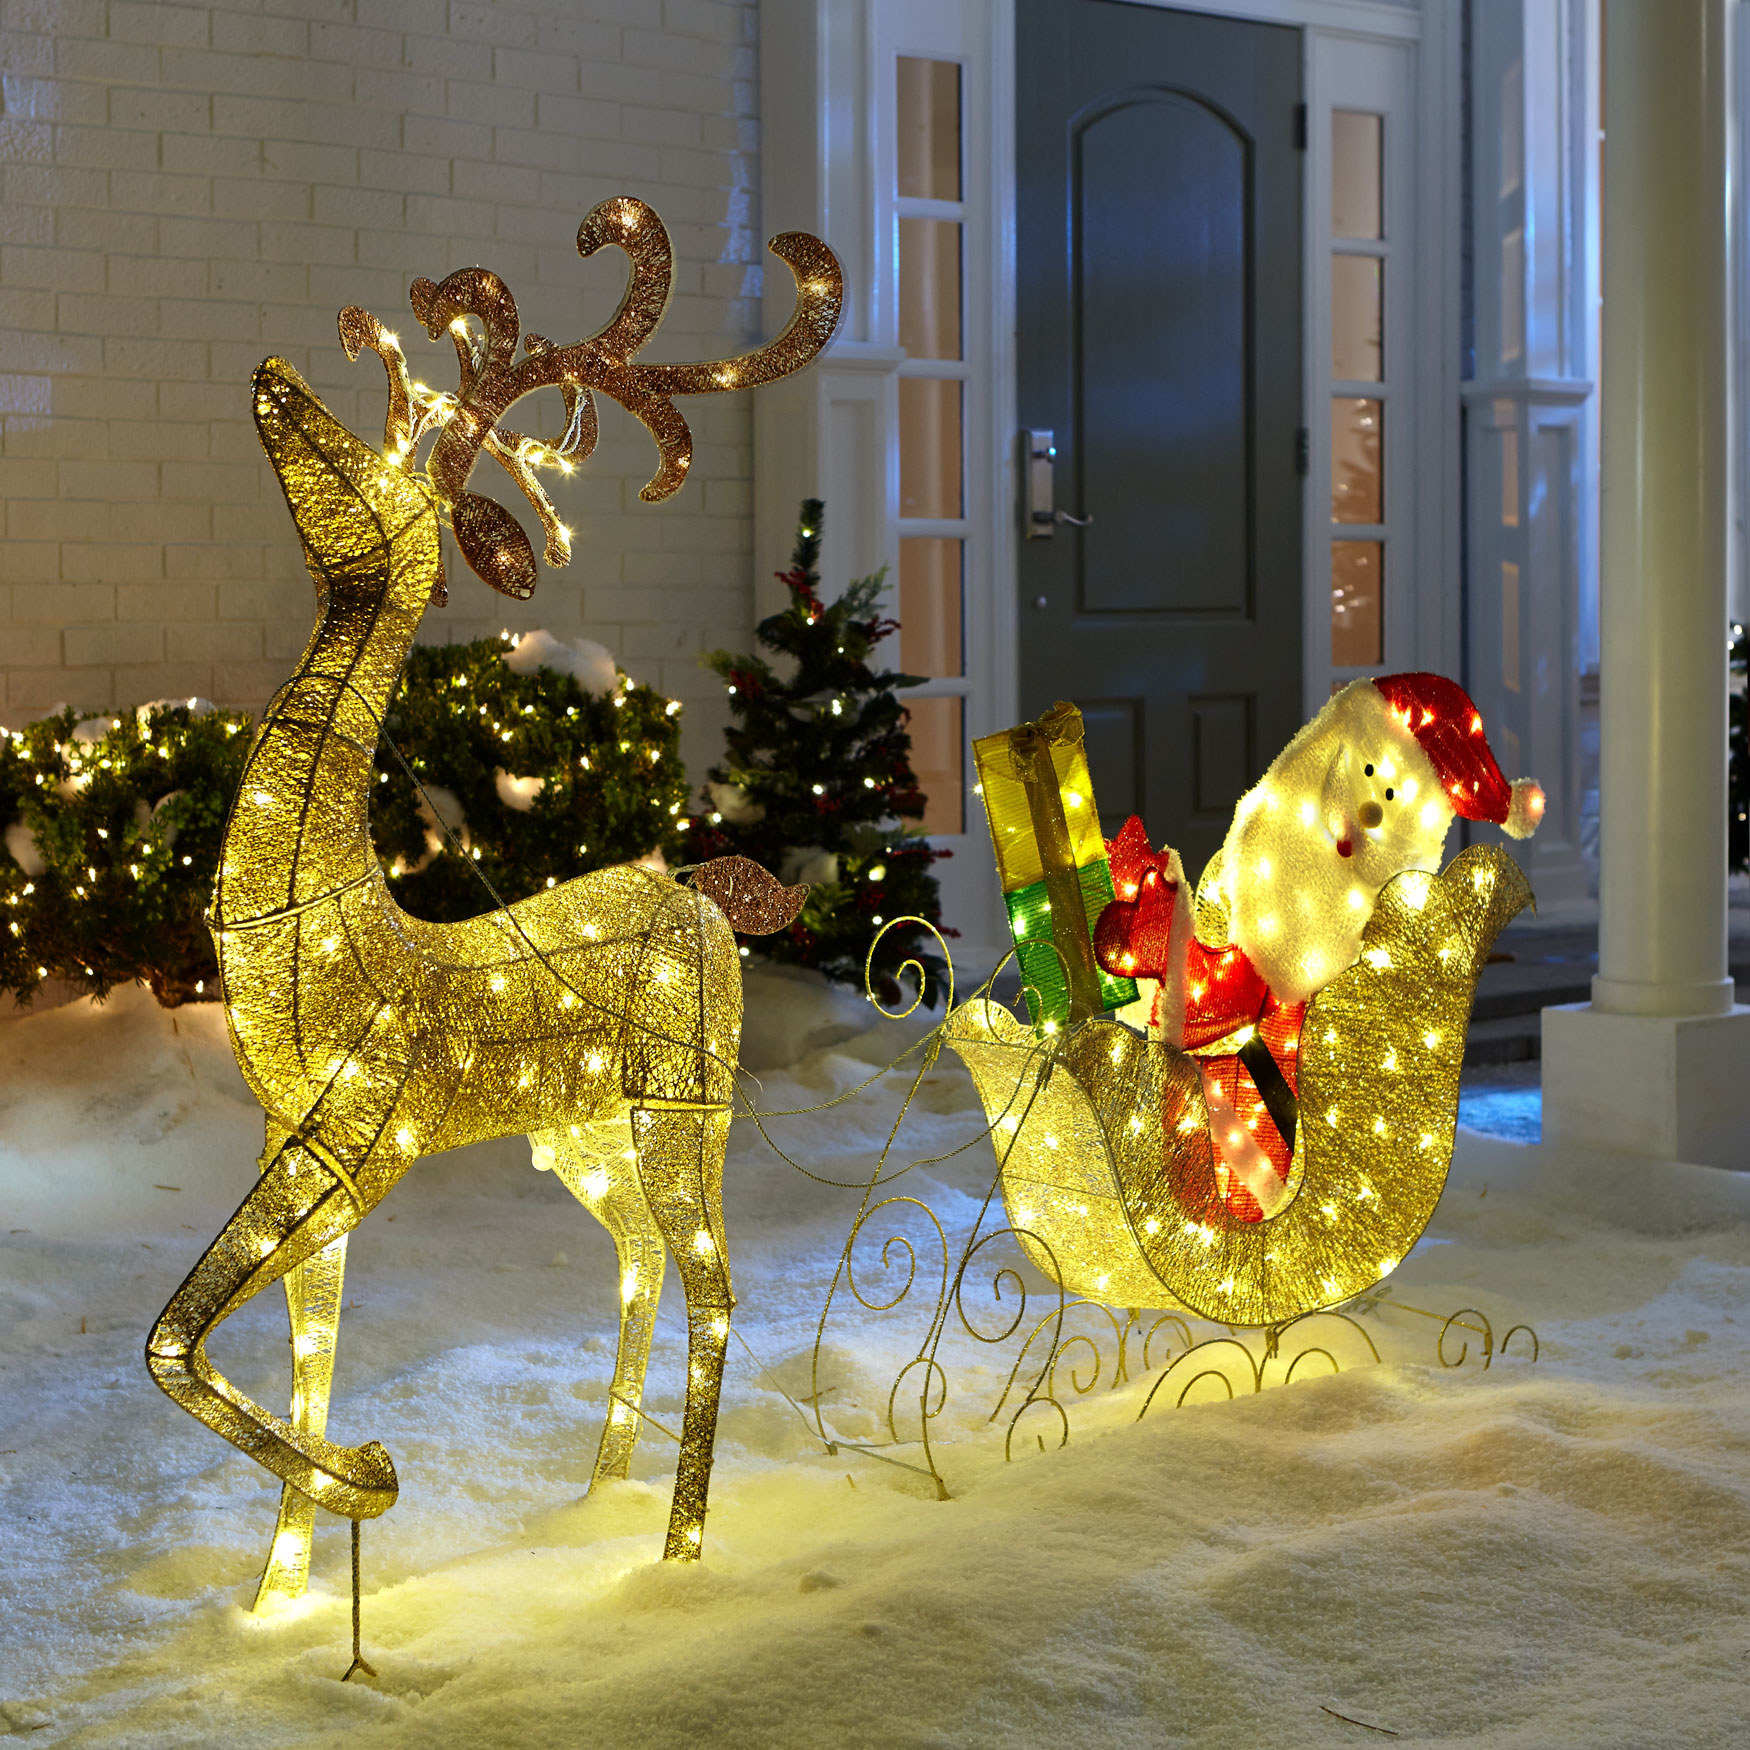 The reindeer and Santa in his sleigh lit up to show size and brightness